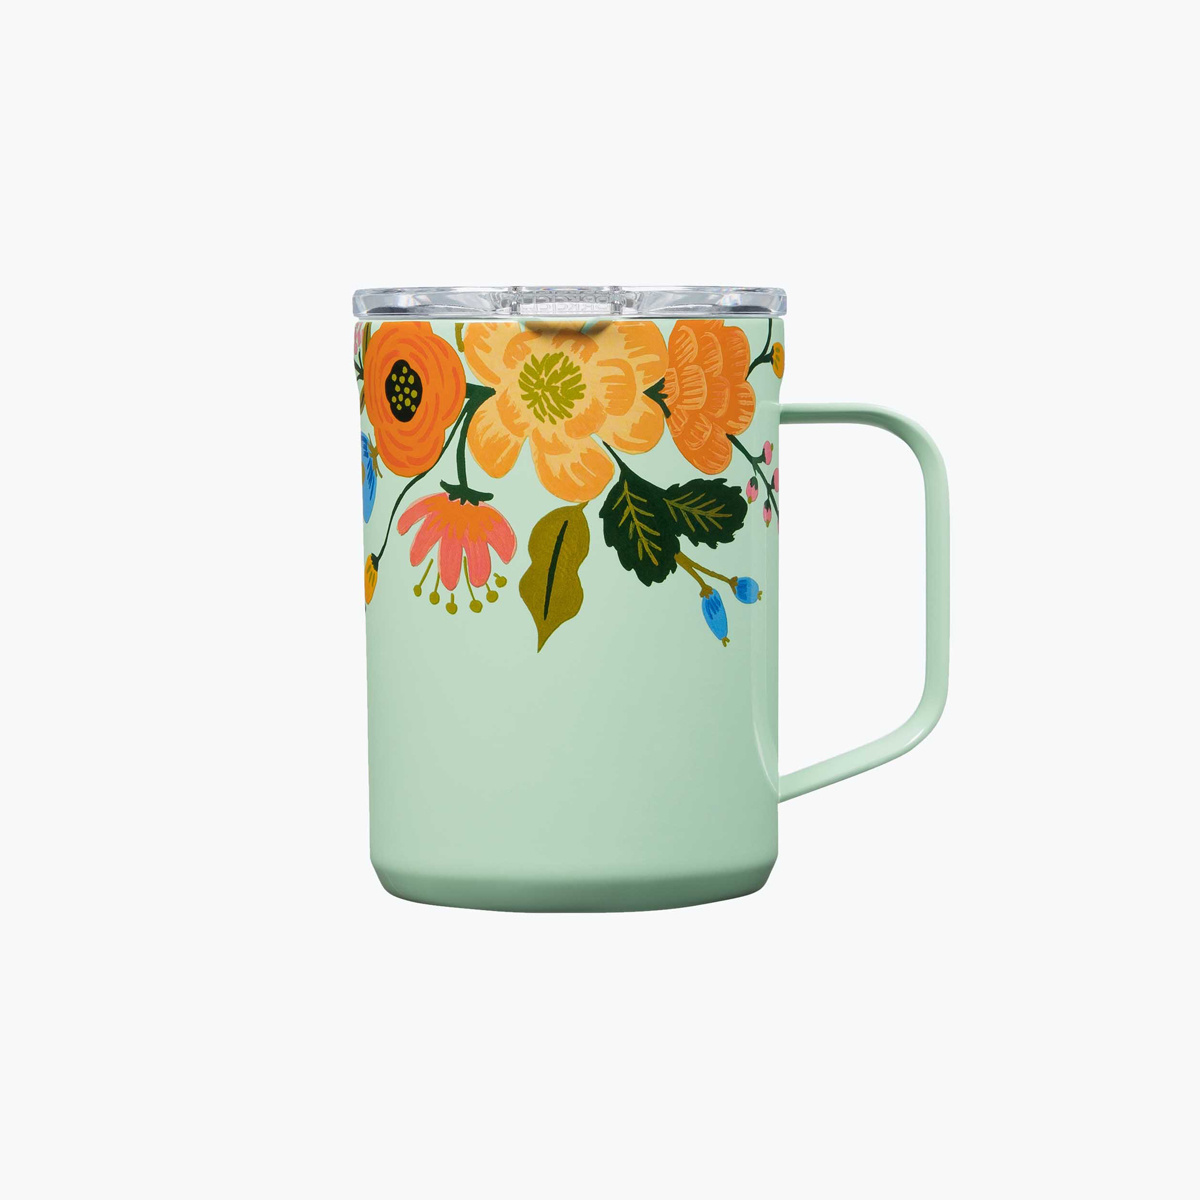 Corkcicle Corkcicle x Rifle Paper Co - Mint Lively Floral Mug